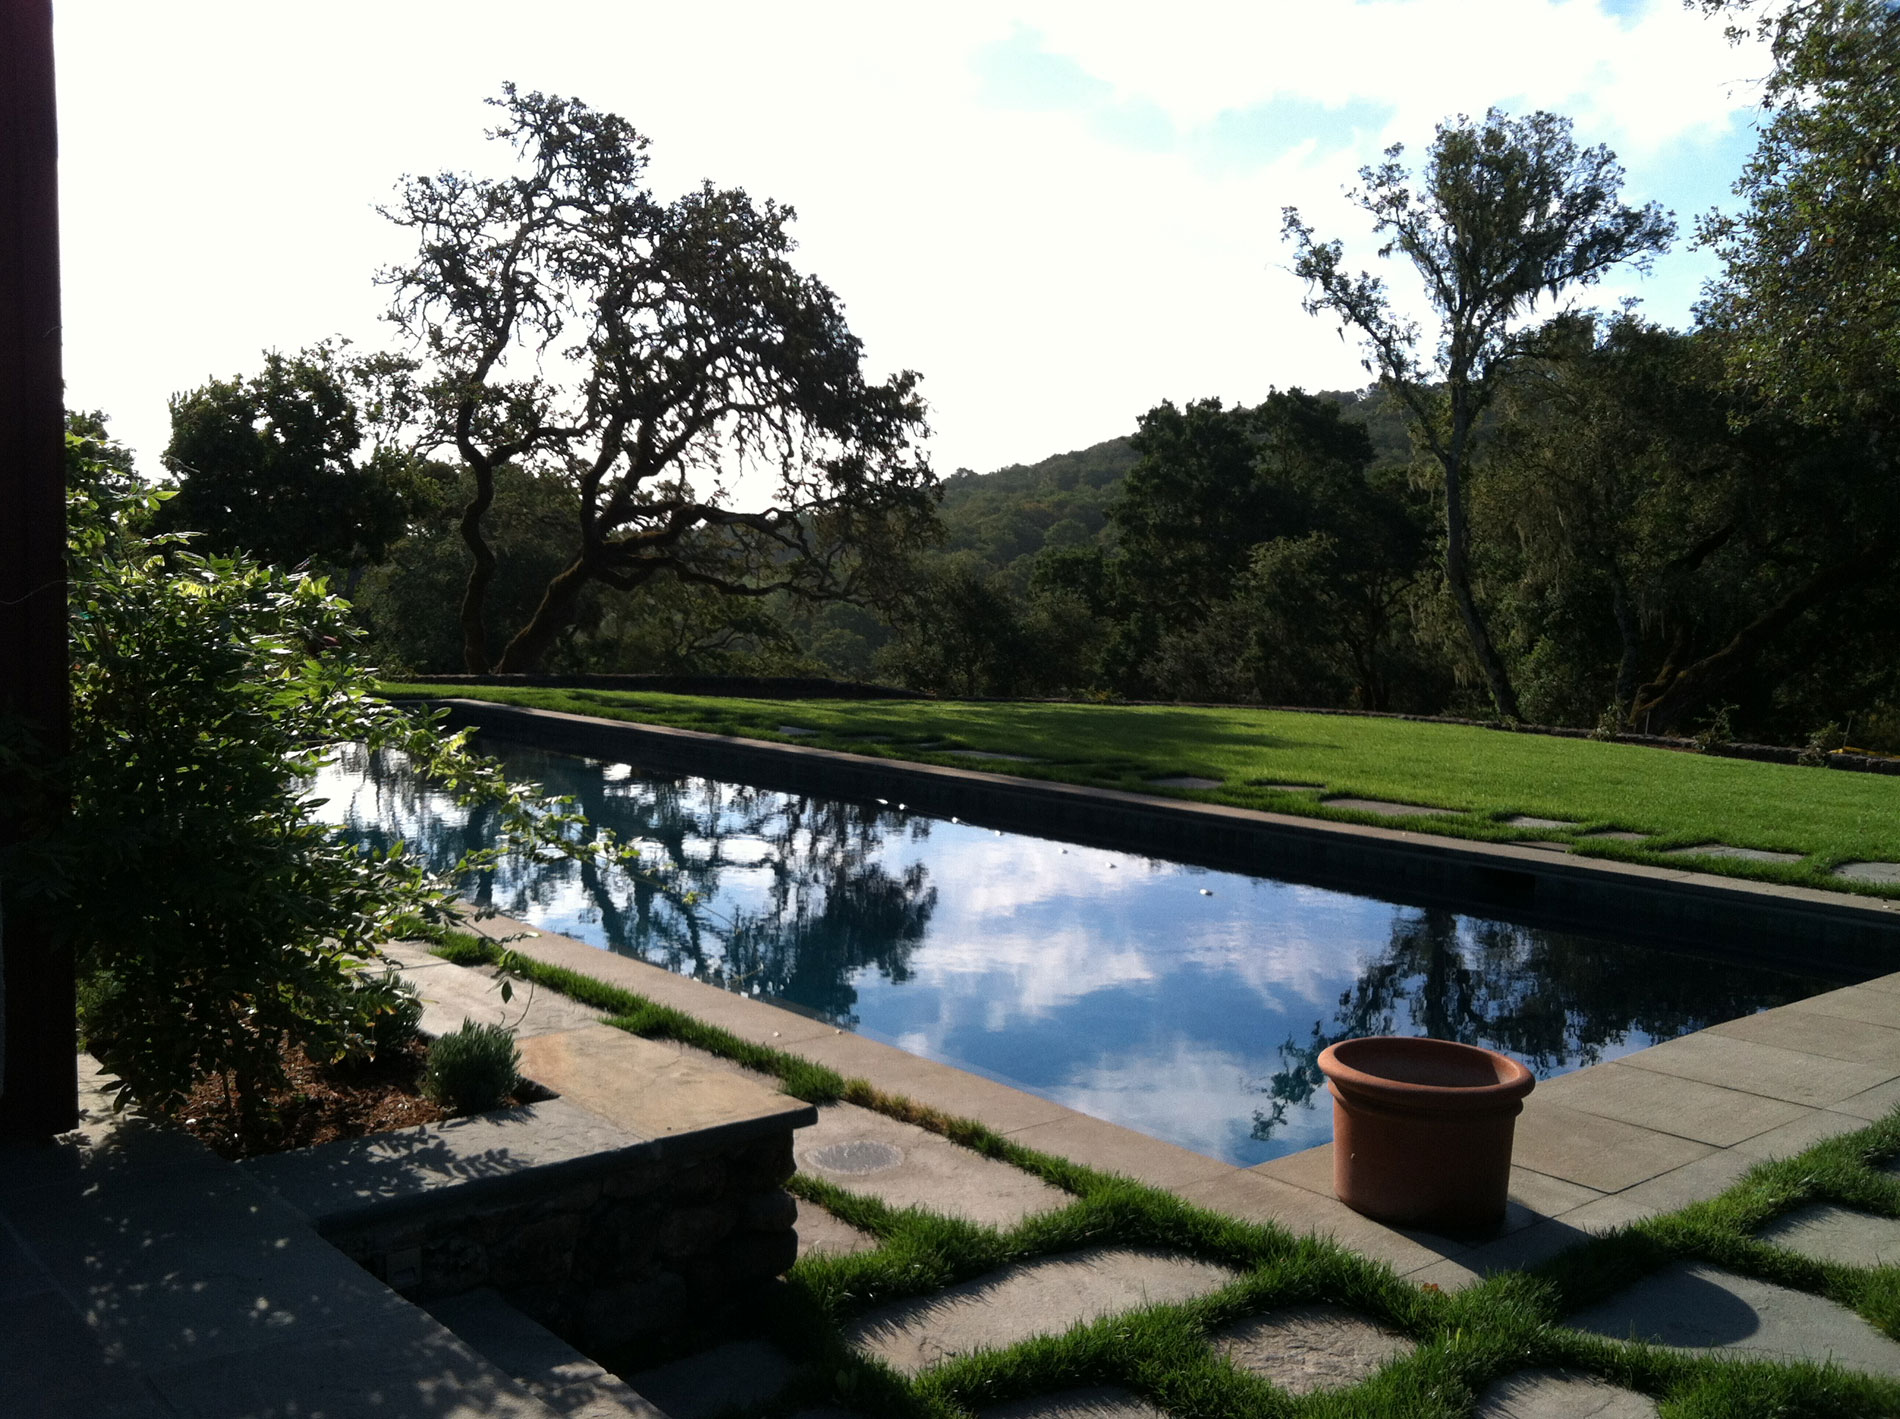 View across the pool to the Sonoma hills.